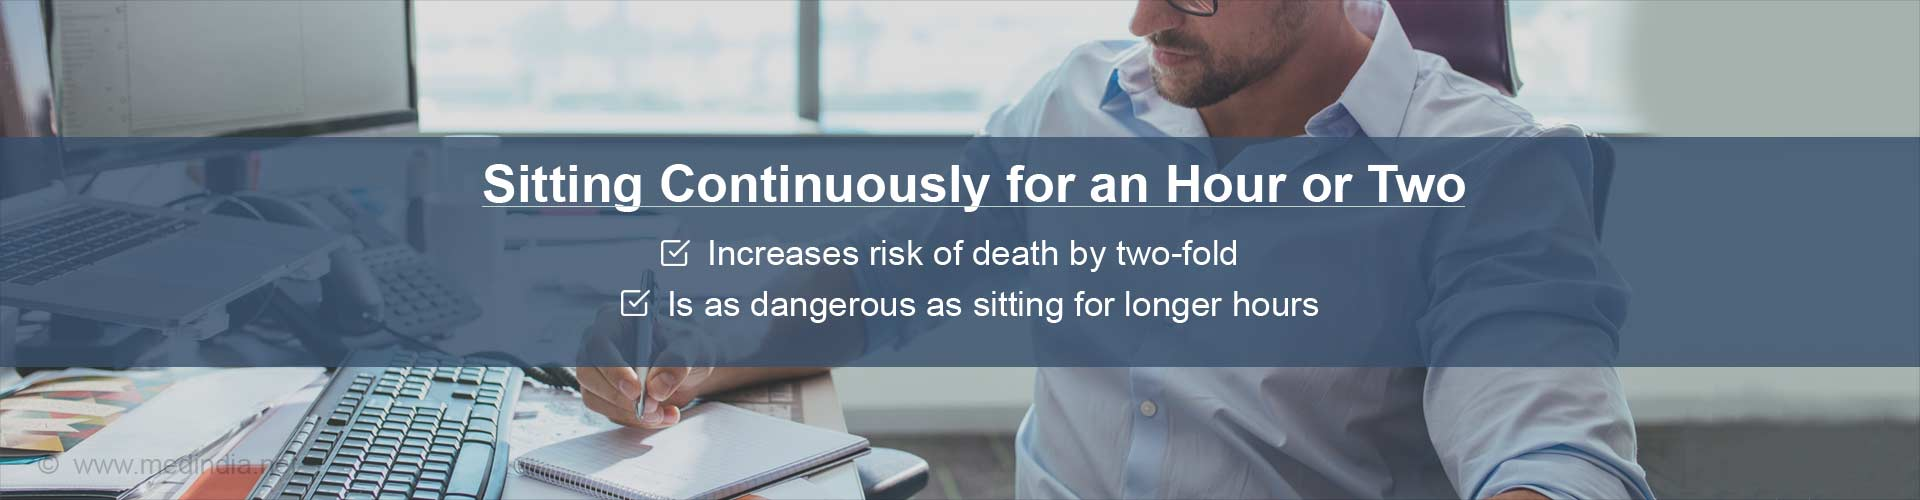 Sitting For More Than One Hour Increases Risk of Death